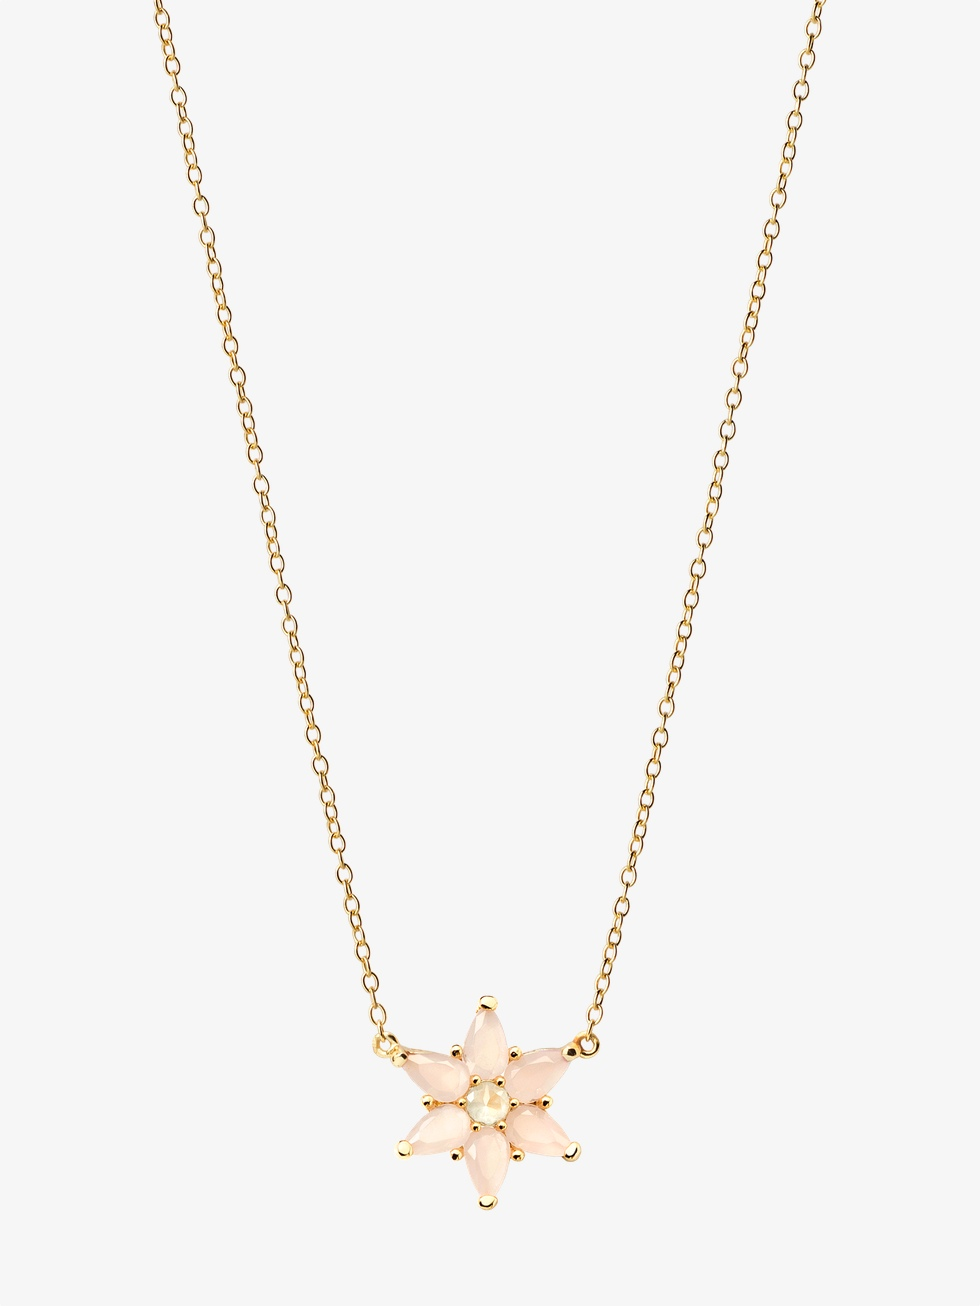 BRENETn gold necklace